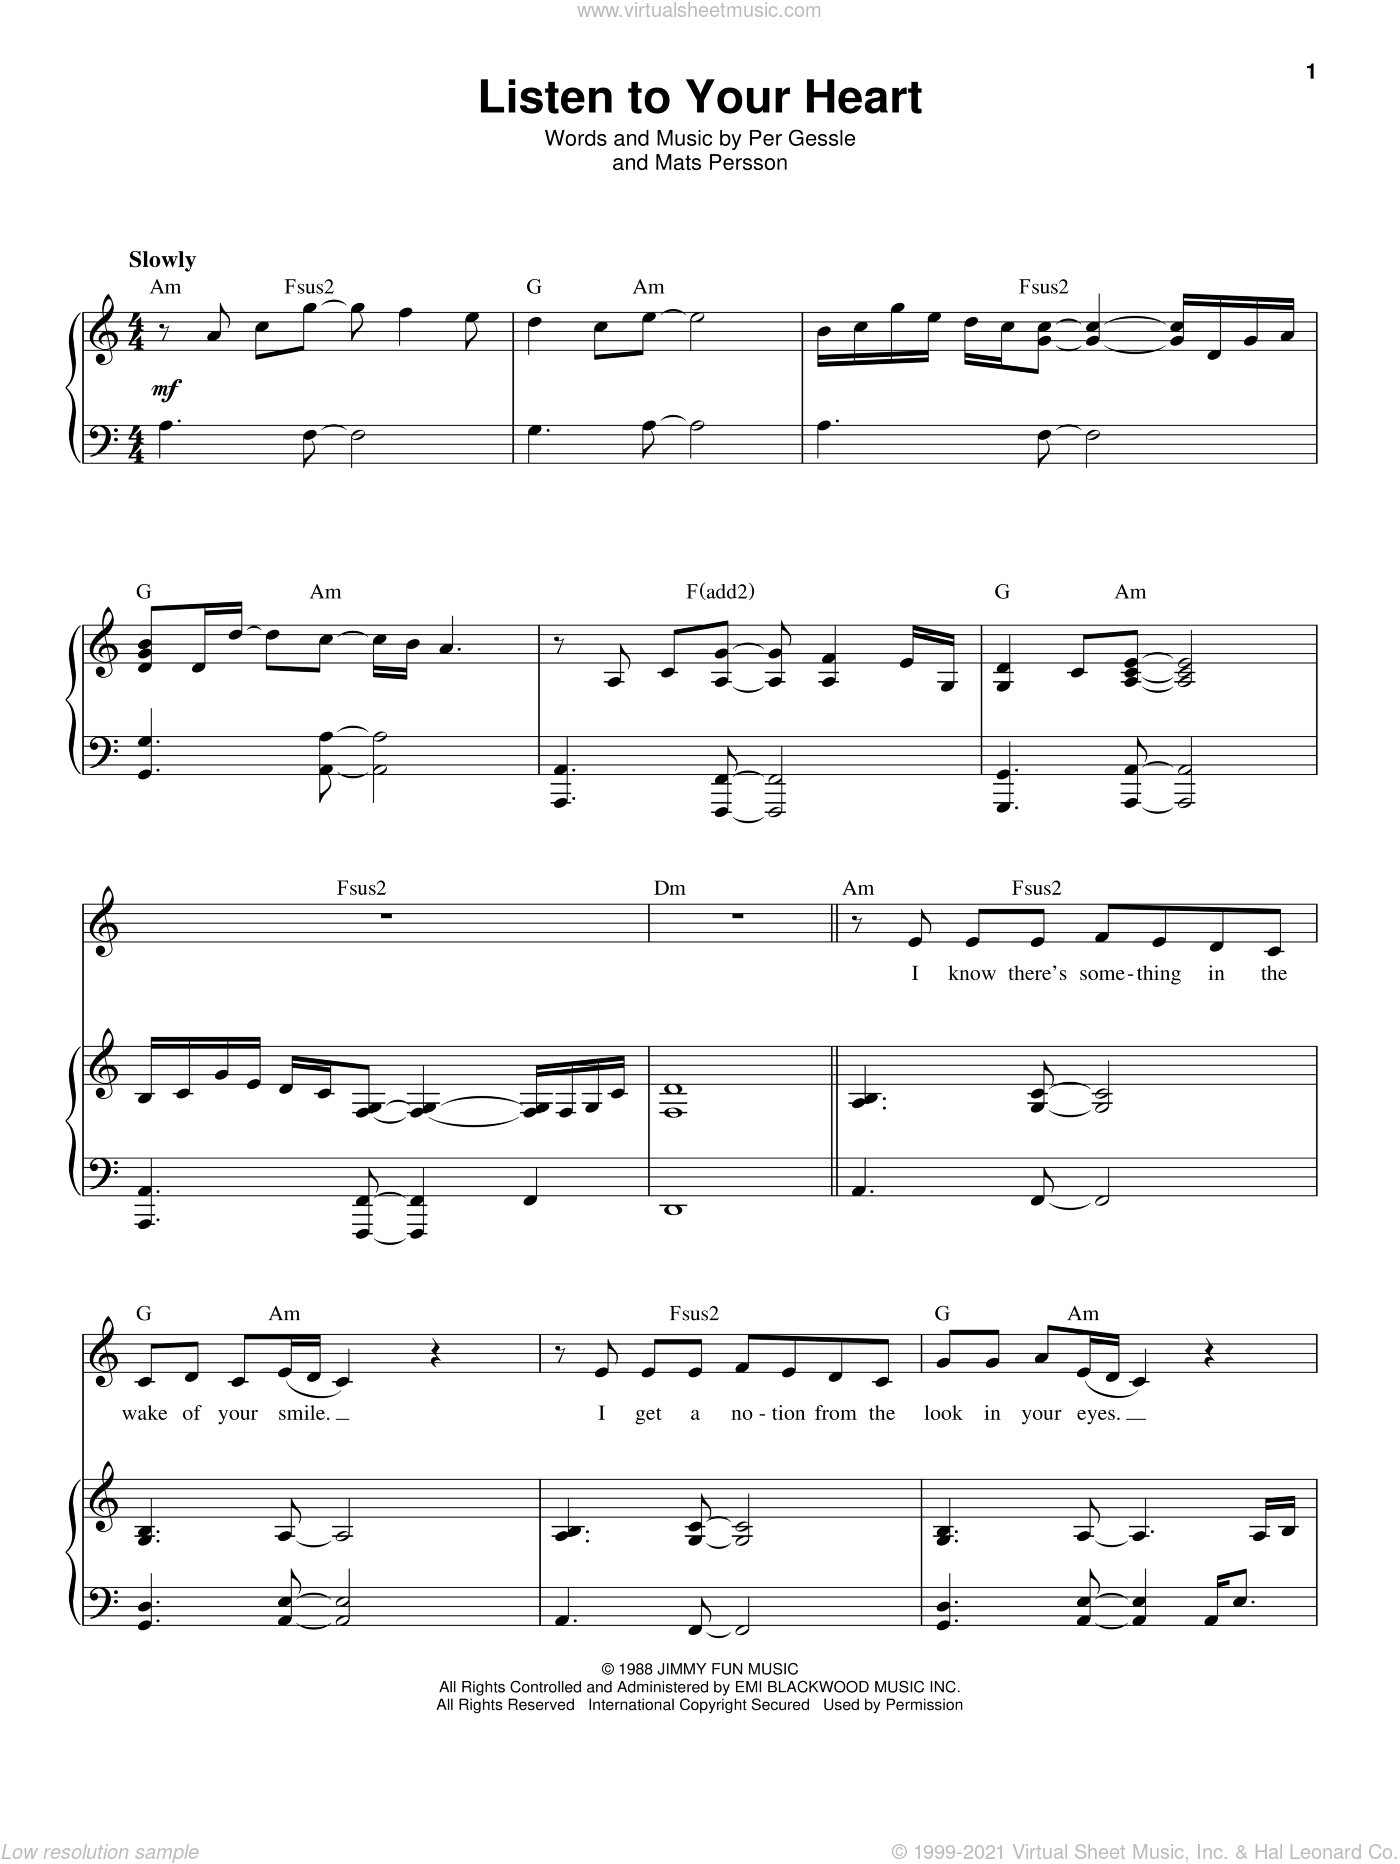 Listen To Your Heart sheet music for voice and piano by D.H.T., Roxette, Mats Persson and Per Gessle, intermediate. Score Image Preview.